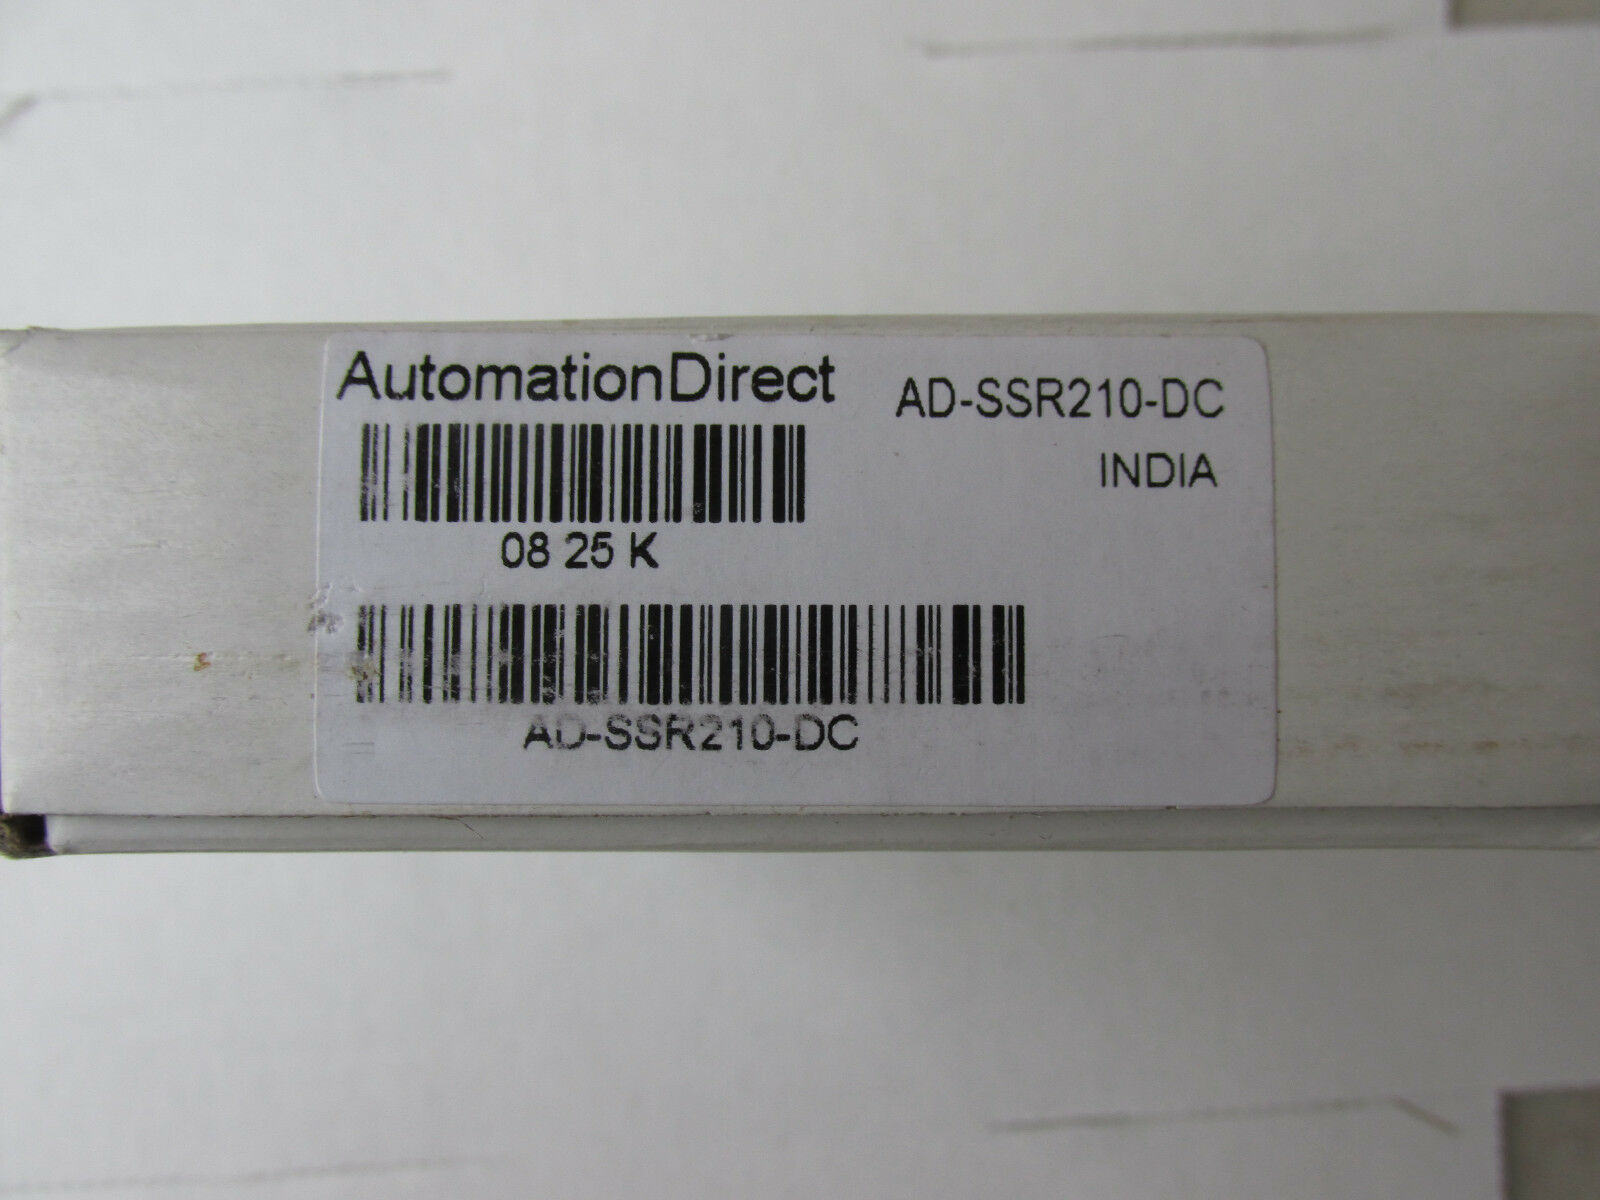 3x Automation Direct Solid State Relay Adssr210dc eBay